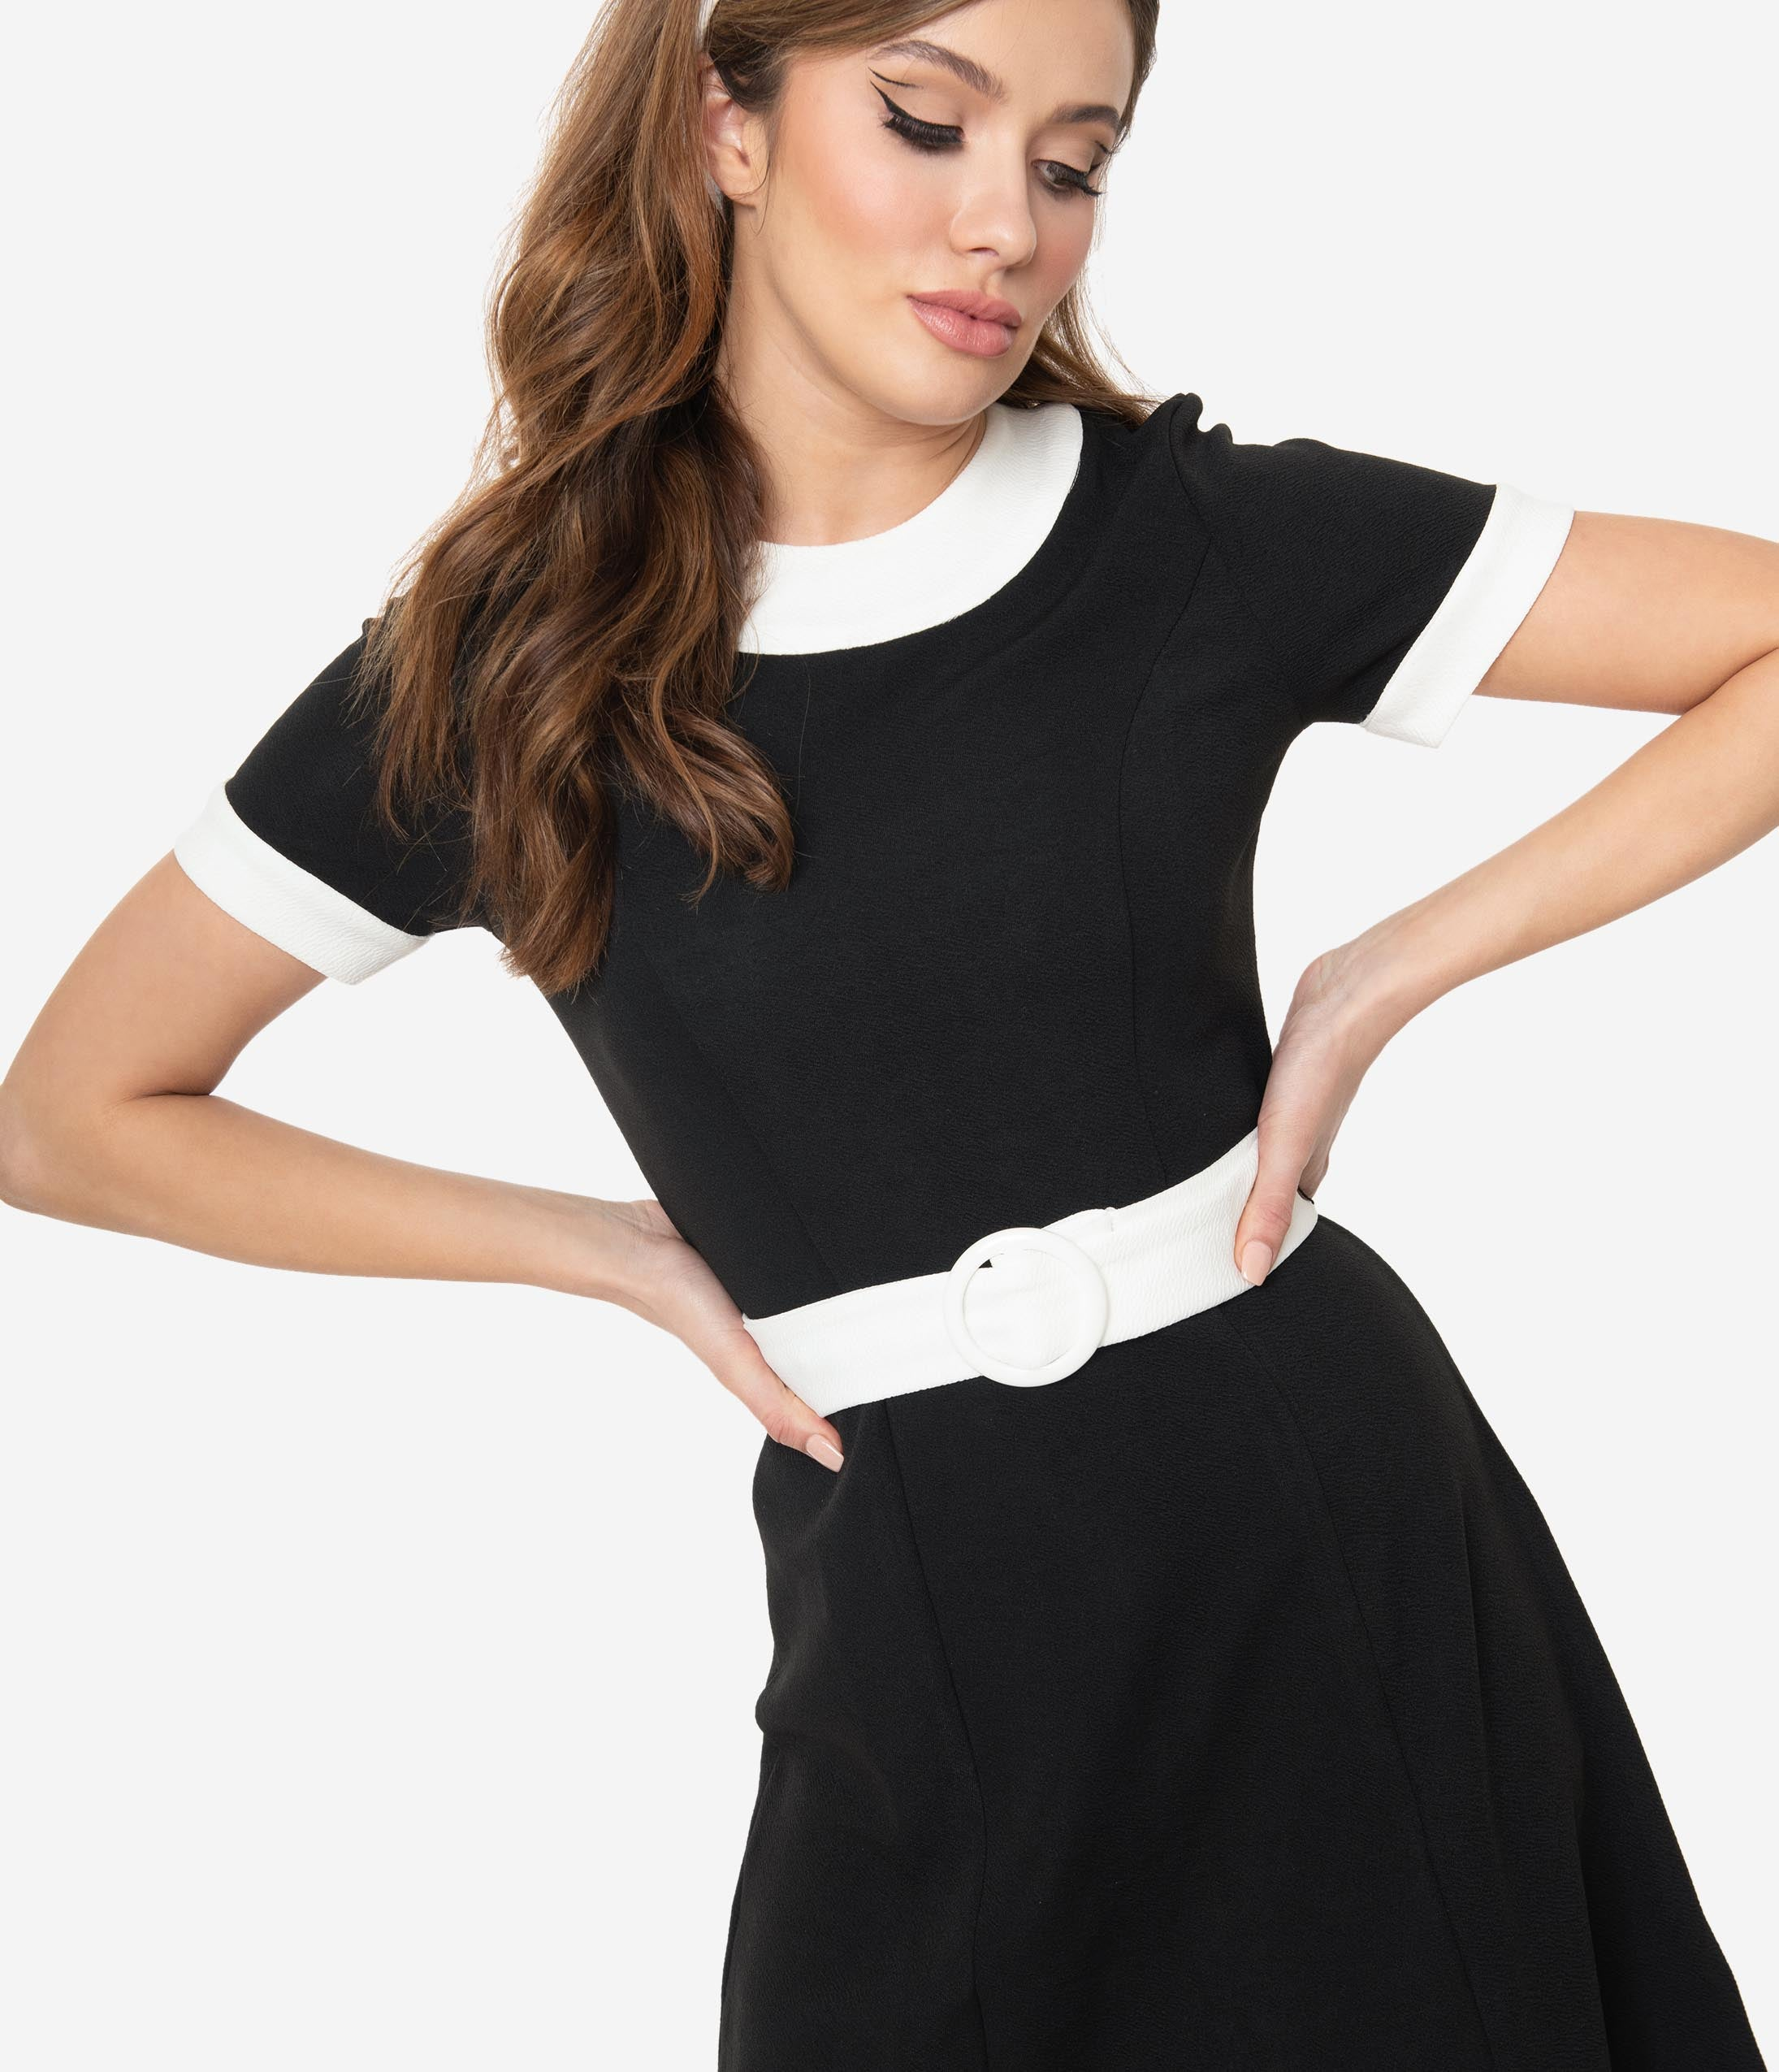 500 Vintage Style Dresses for Sale | Vintage Inspired Dresses Smak Parlour Black  White Belted Show Stealer Dress $58.00 AT vintagedancer.com